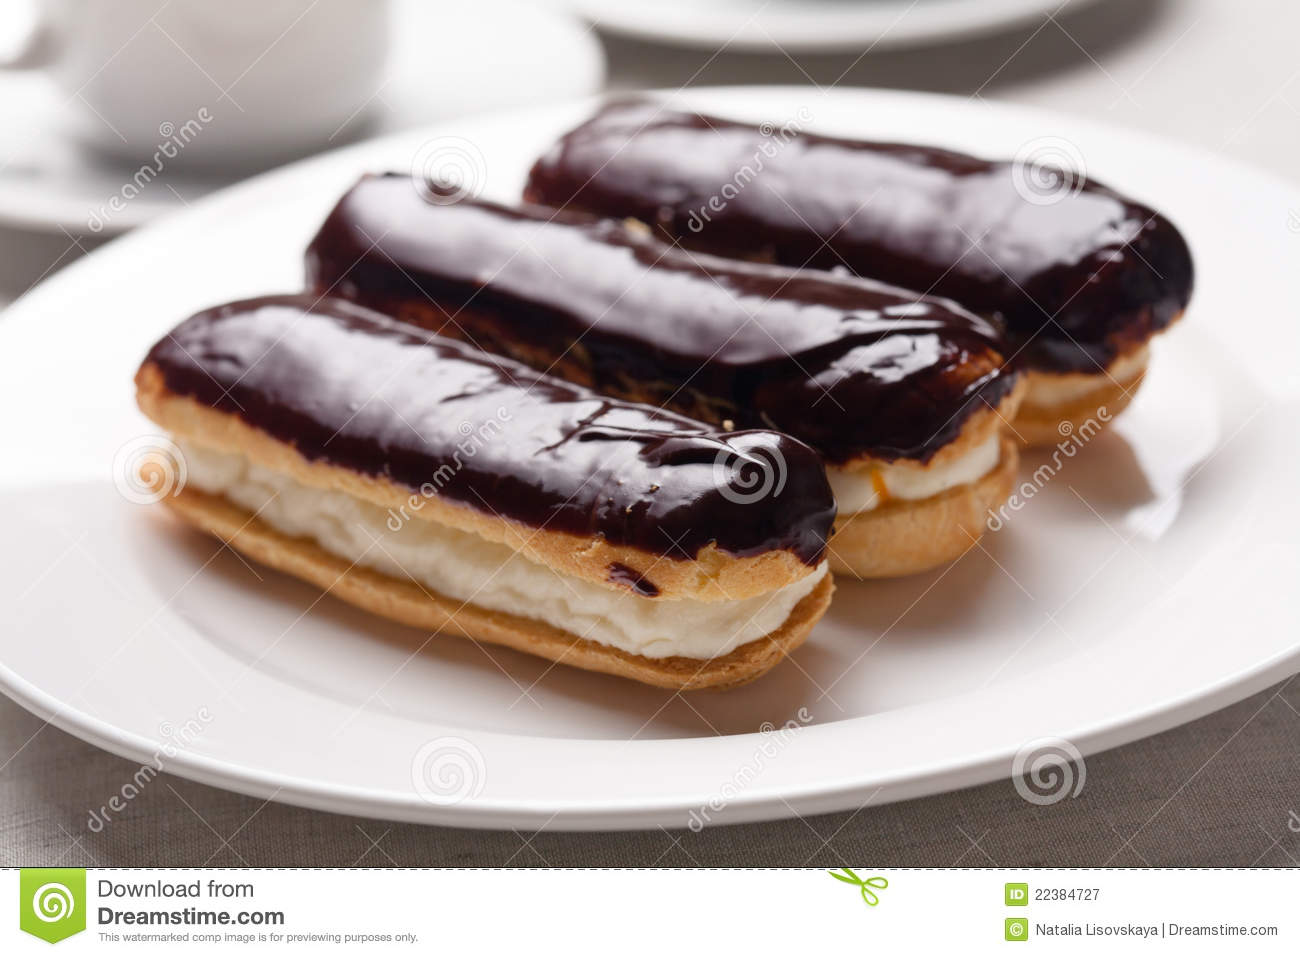 Chocolate Eclairs Royalty Free Stock Photography - Image: 22384727